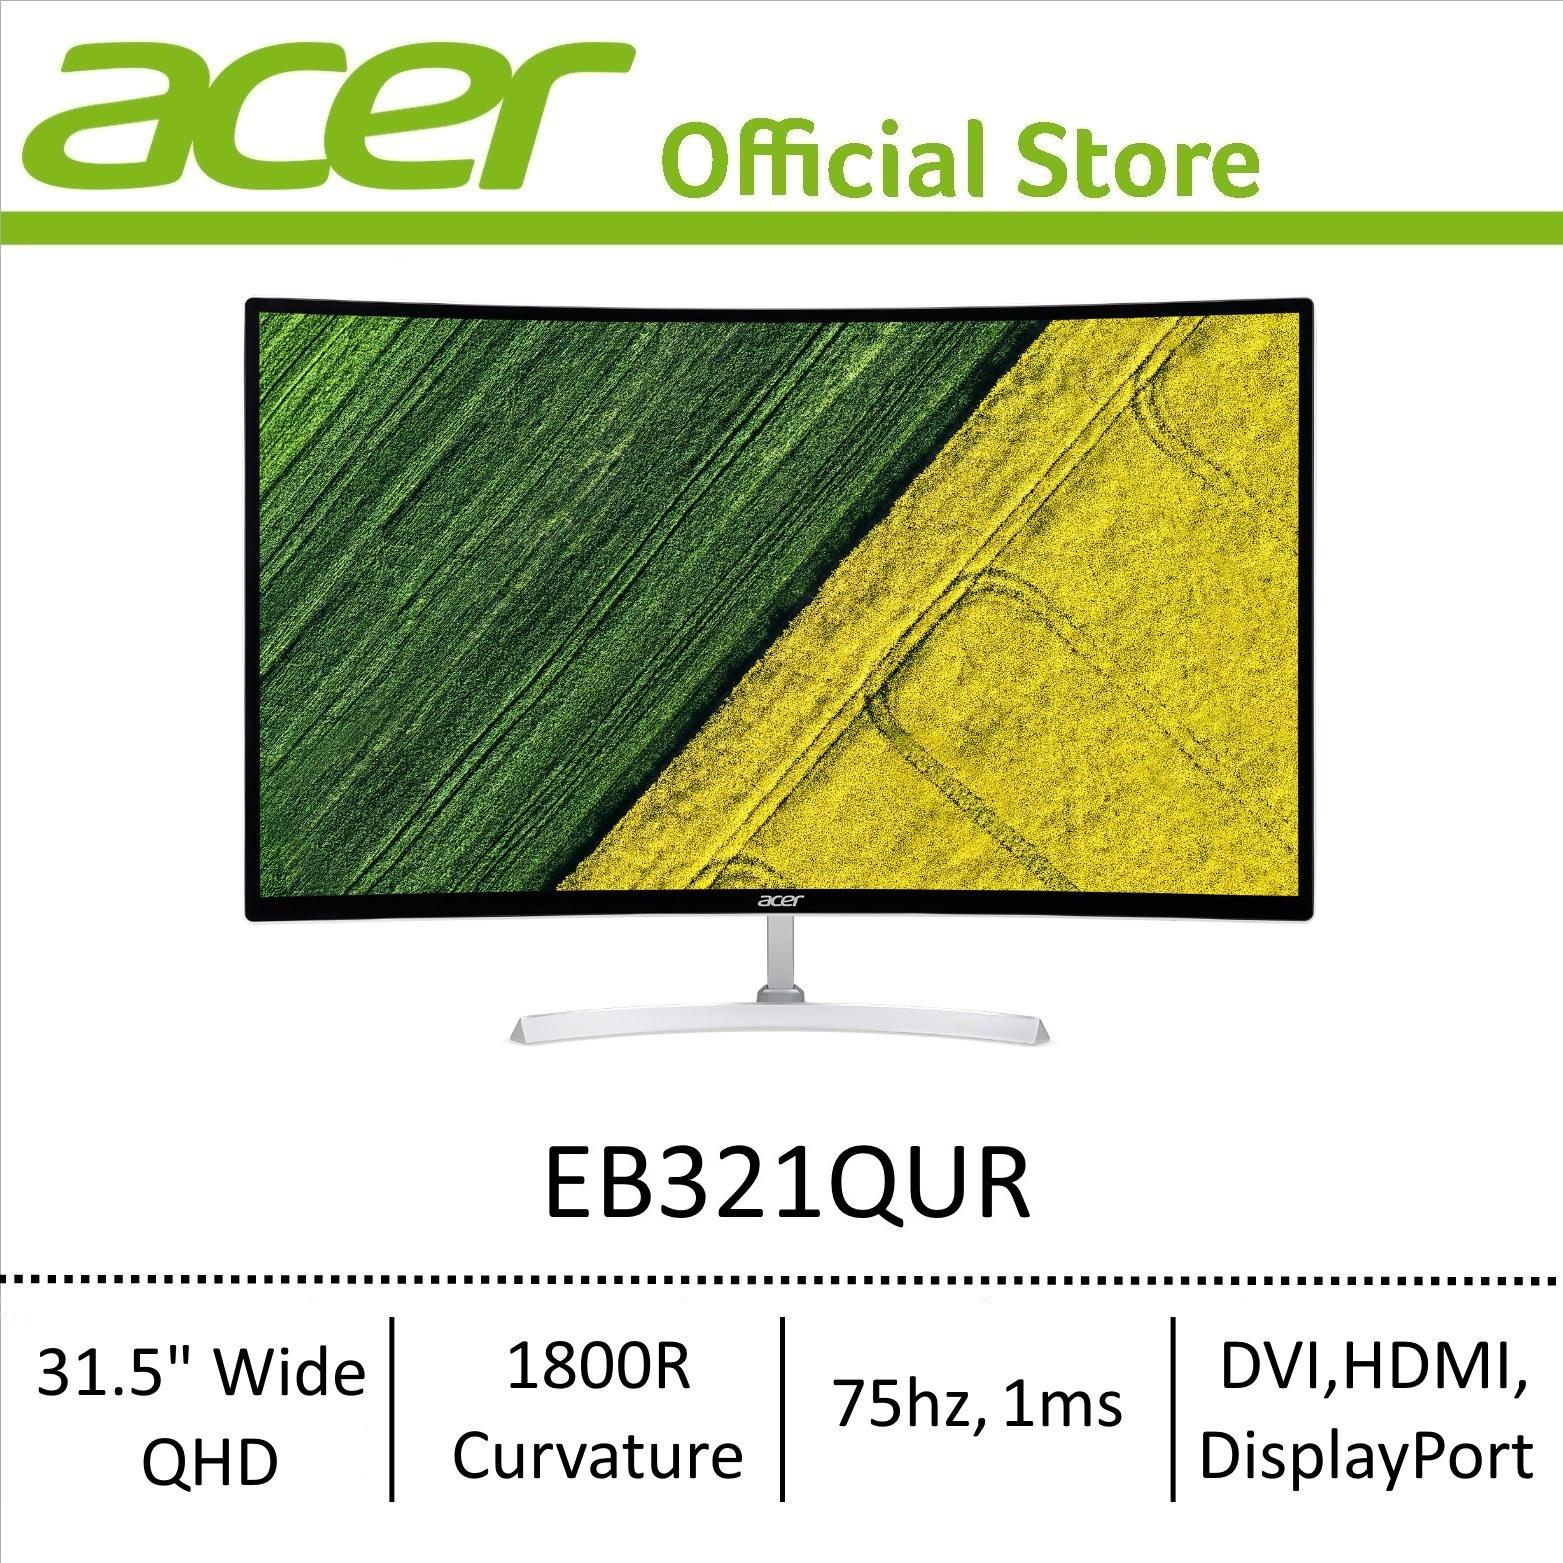 [NEW] Acer EB321QUR 31.5 Wide QHD Curved Monitor